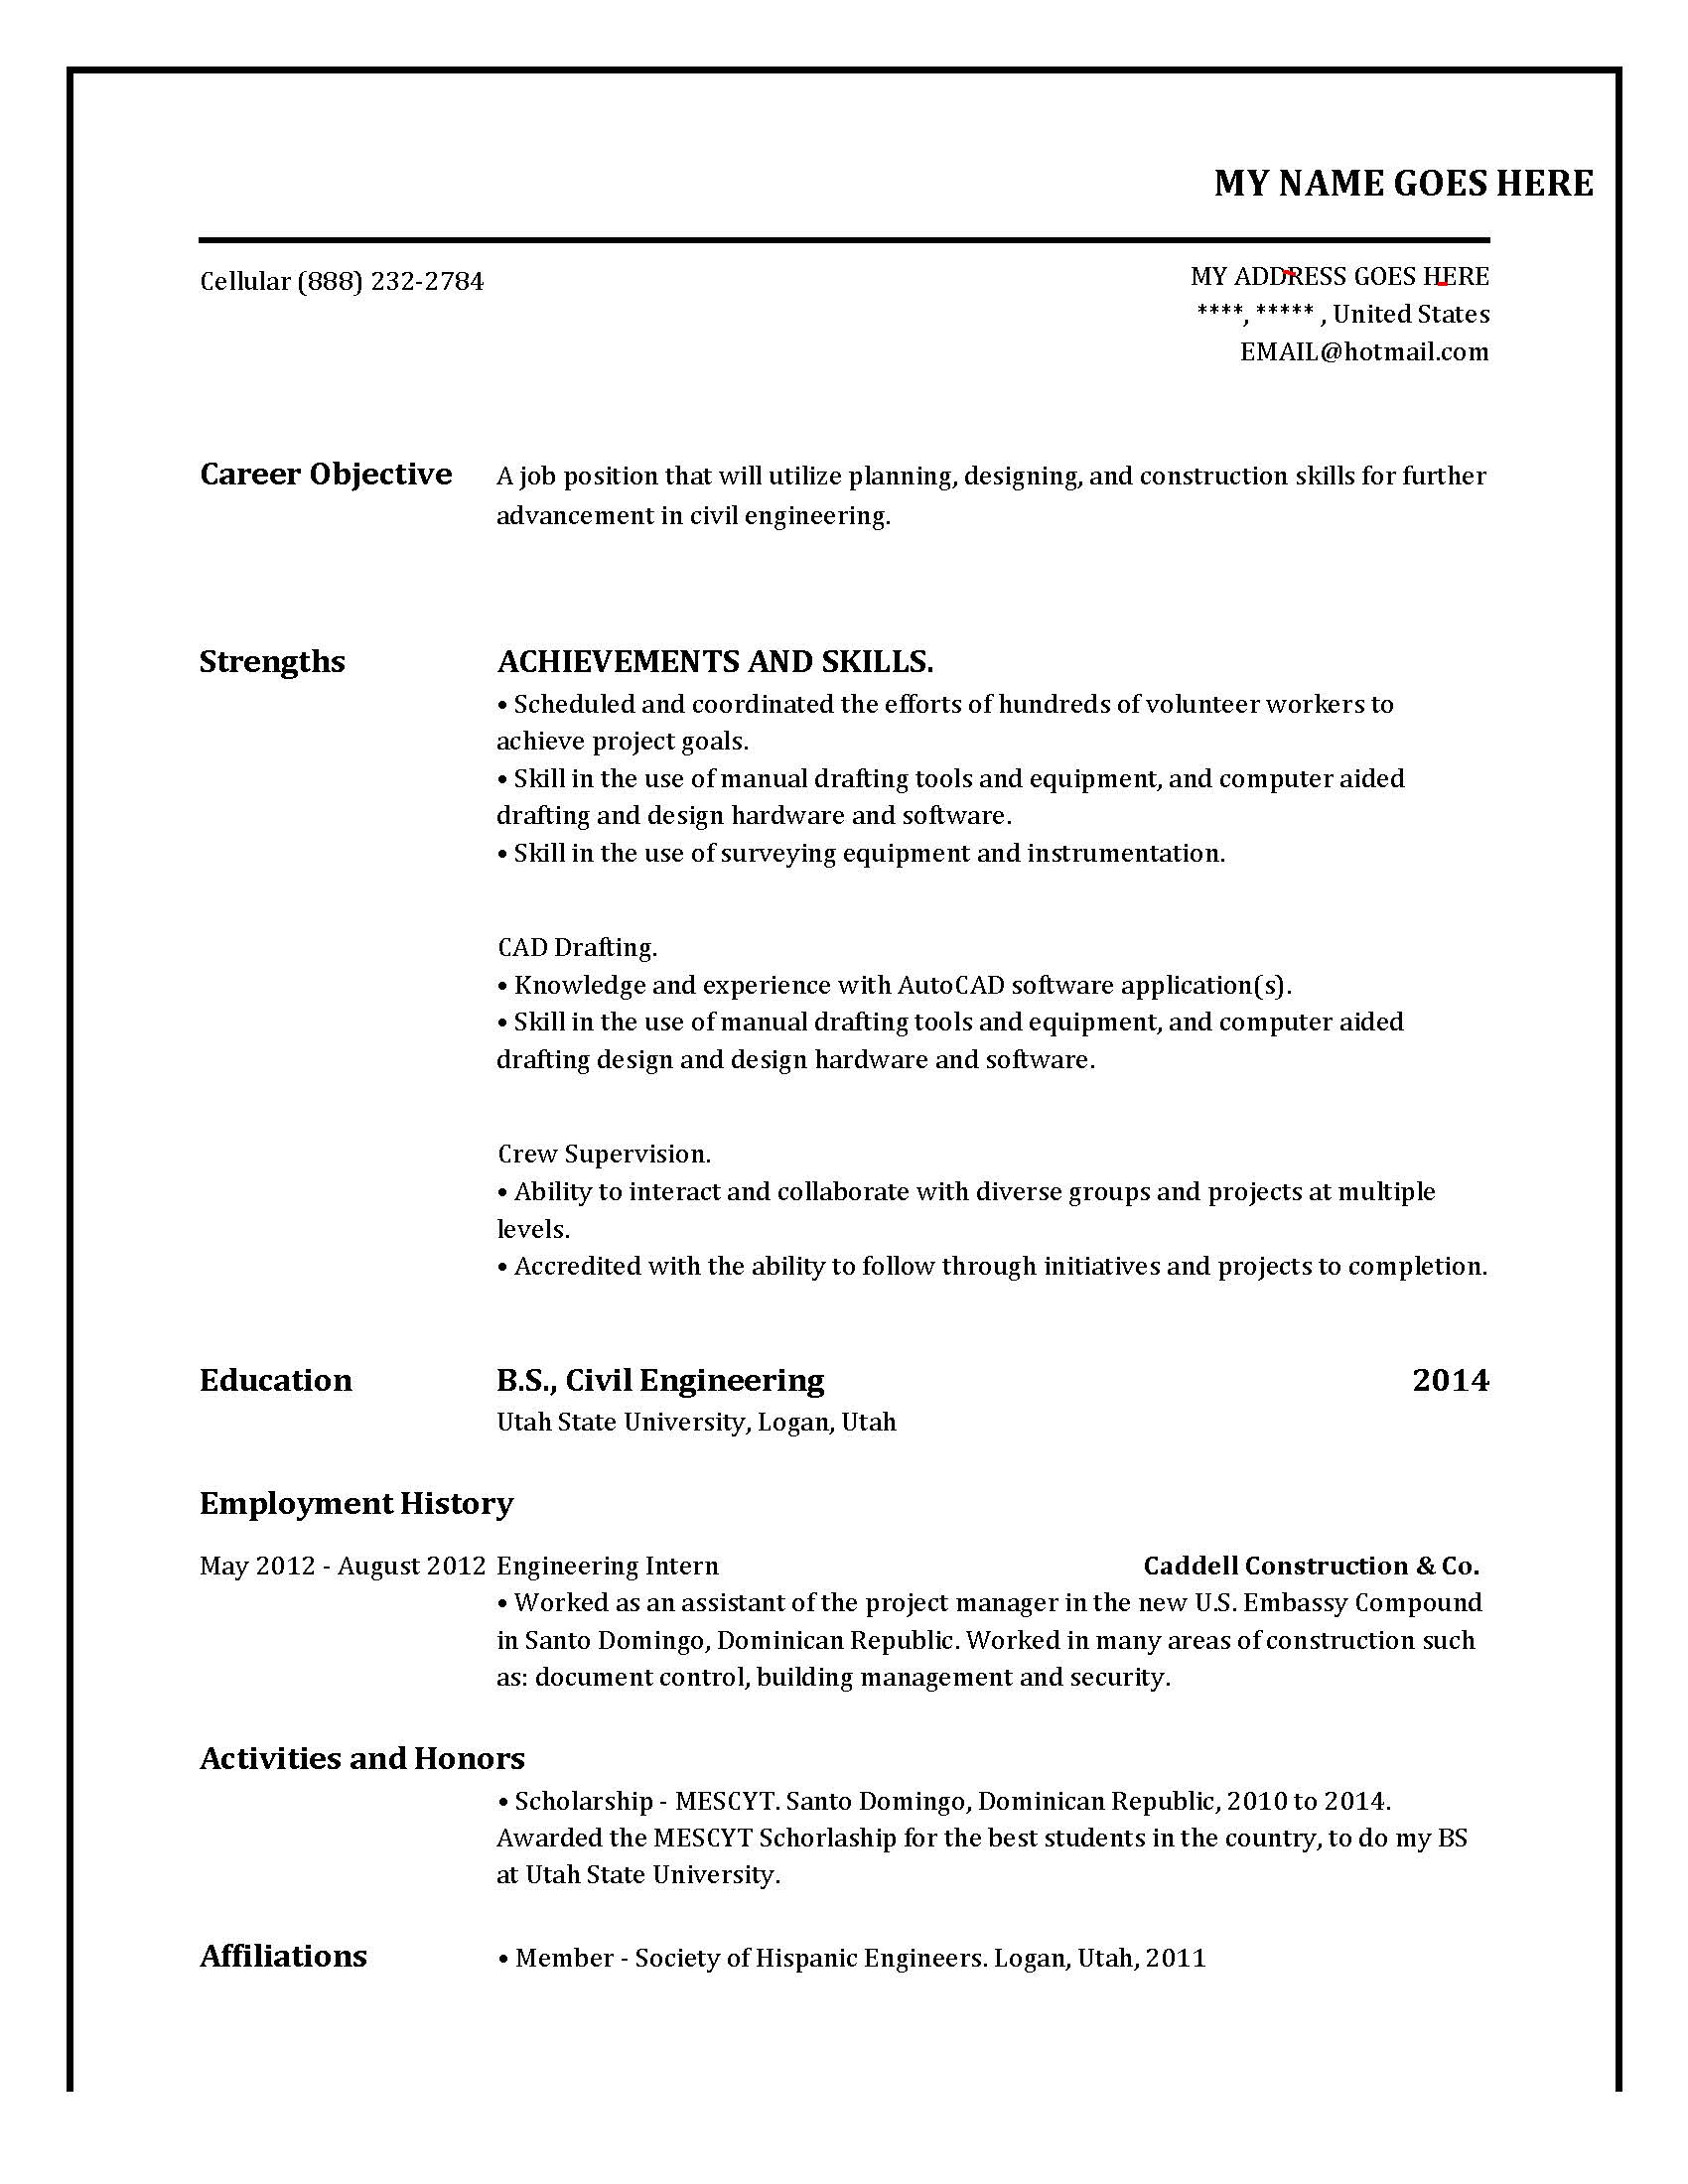 how can i send my resume to my email